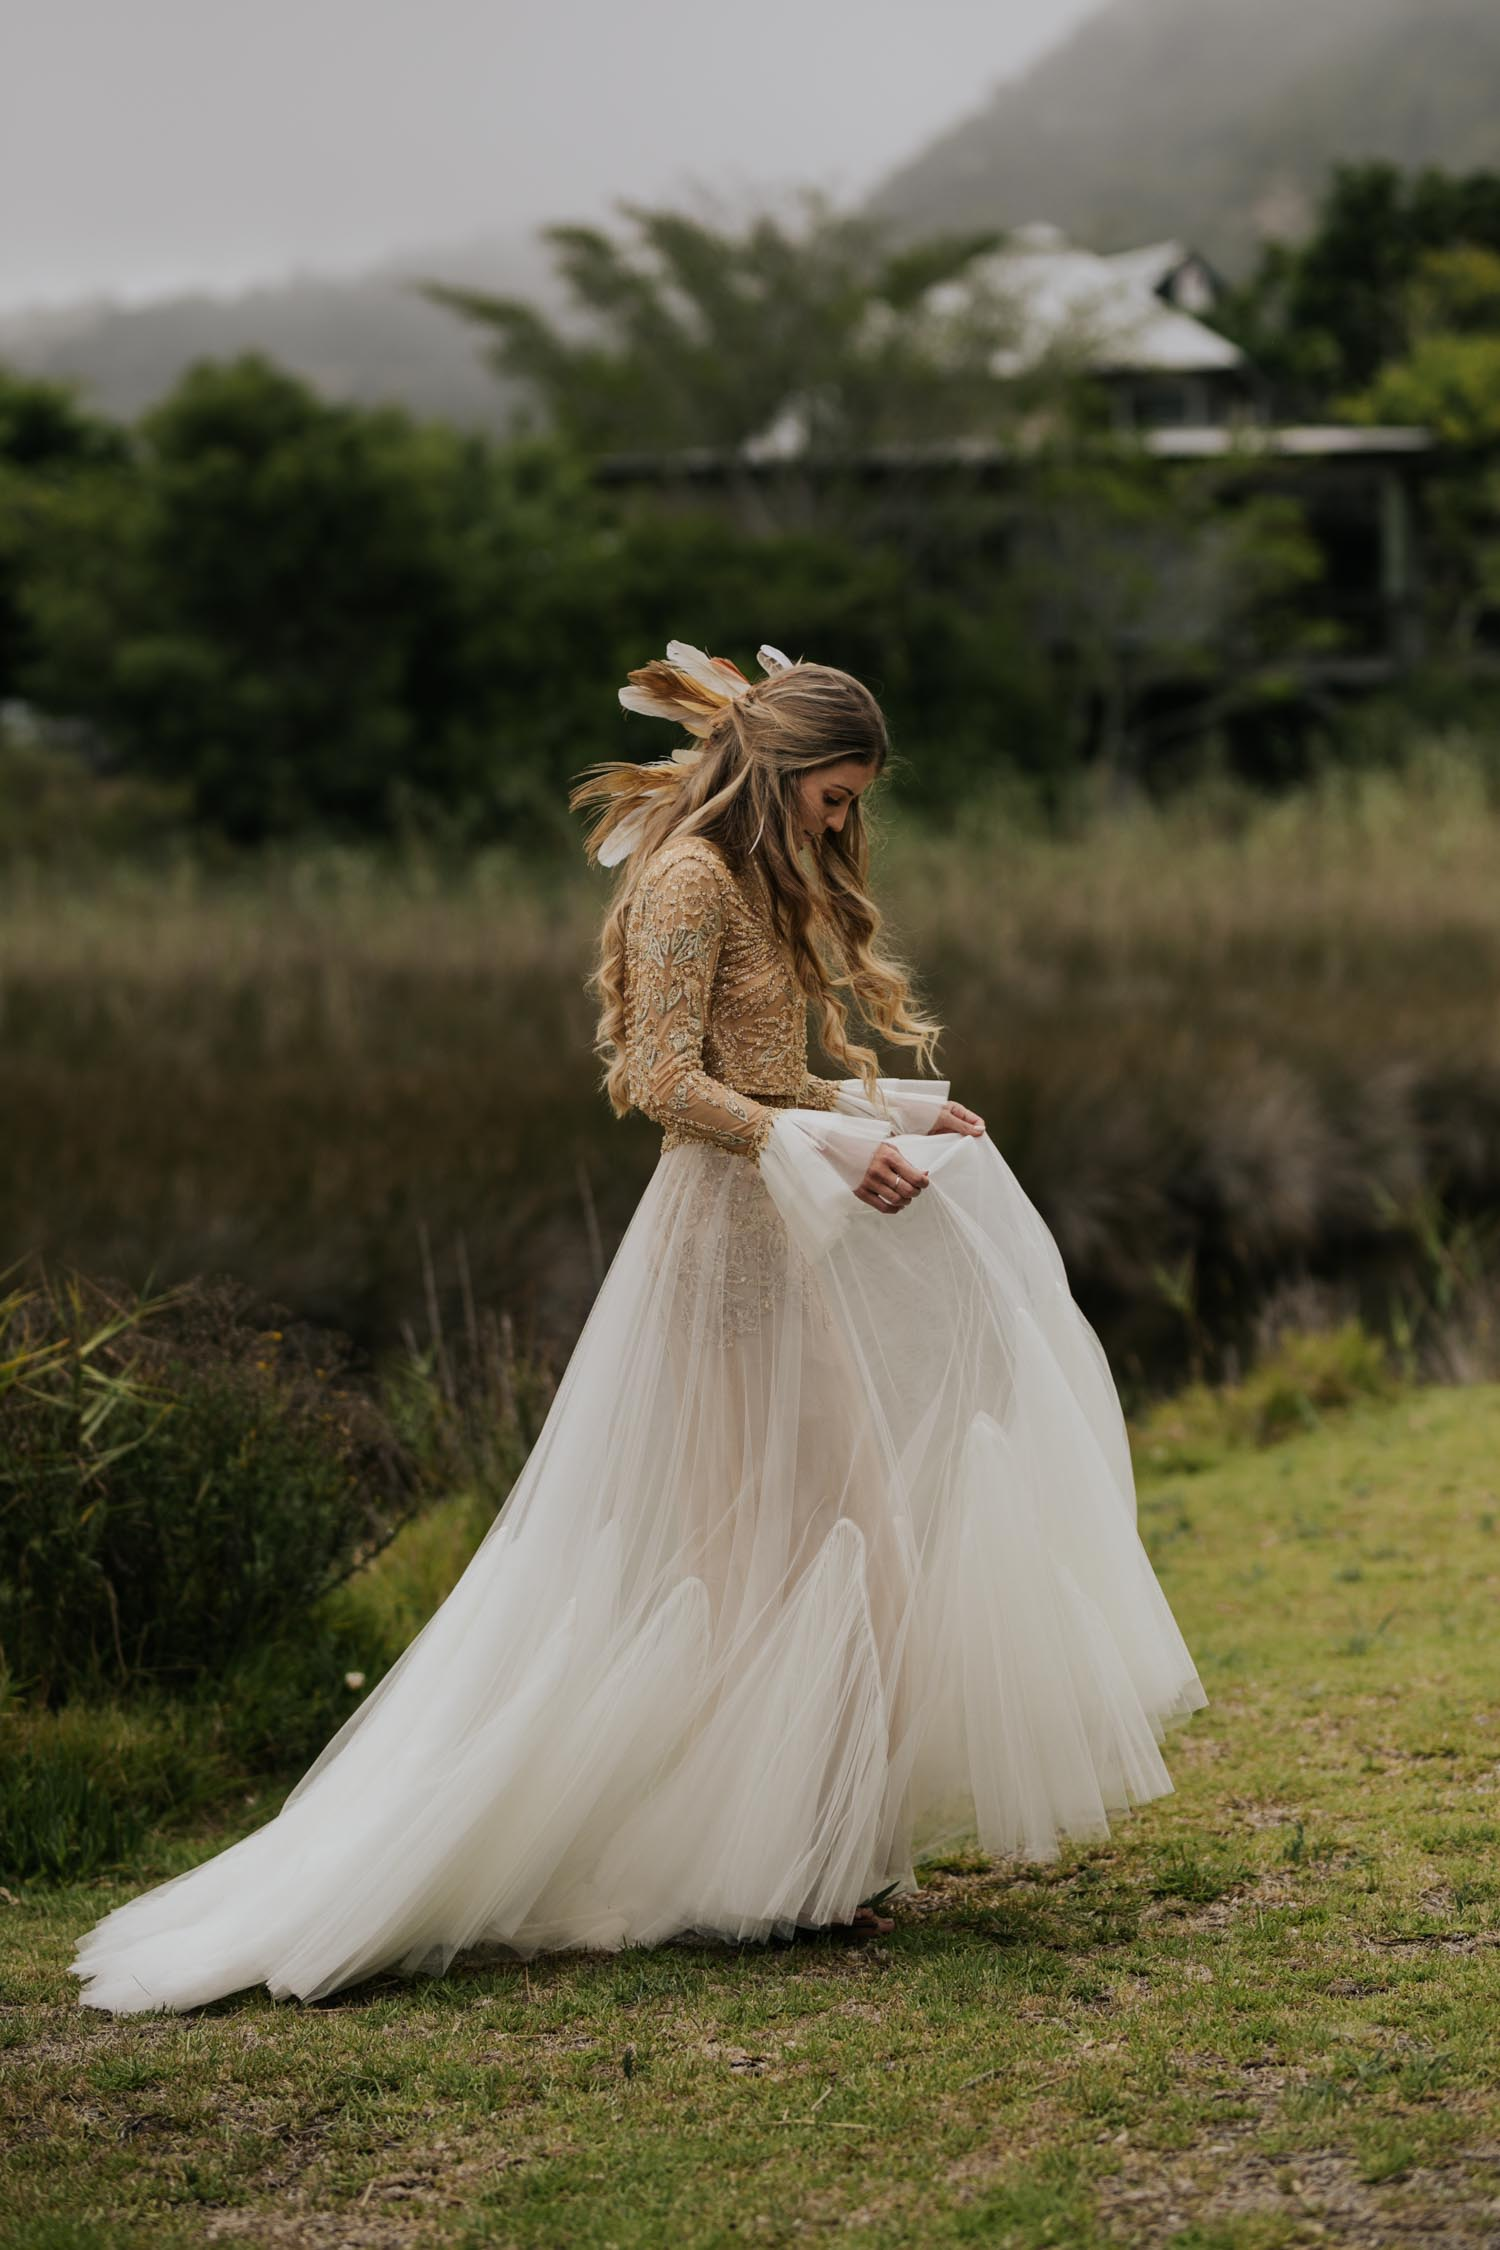 Bohemian bride with long curly blonde hair wears two piece gold and cream long sleeve wedding dress and feathers and plait in her hair shows off her dress